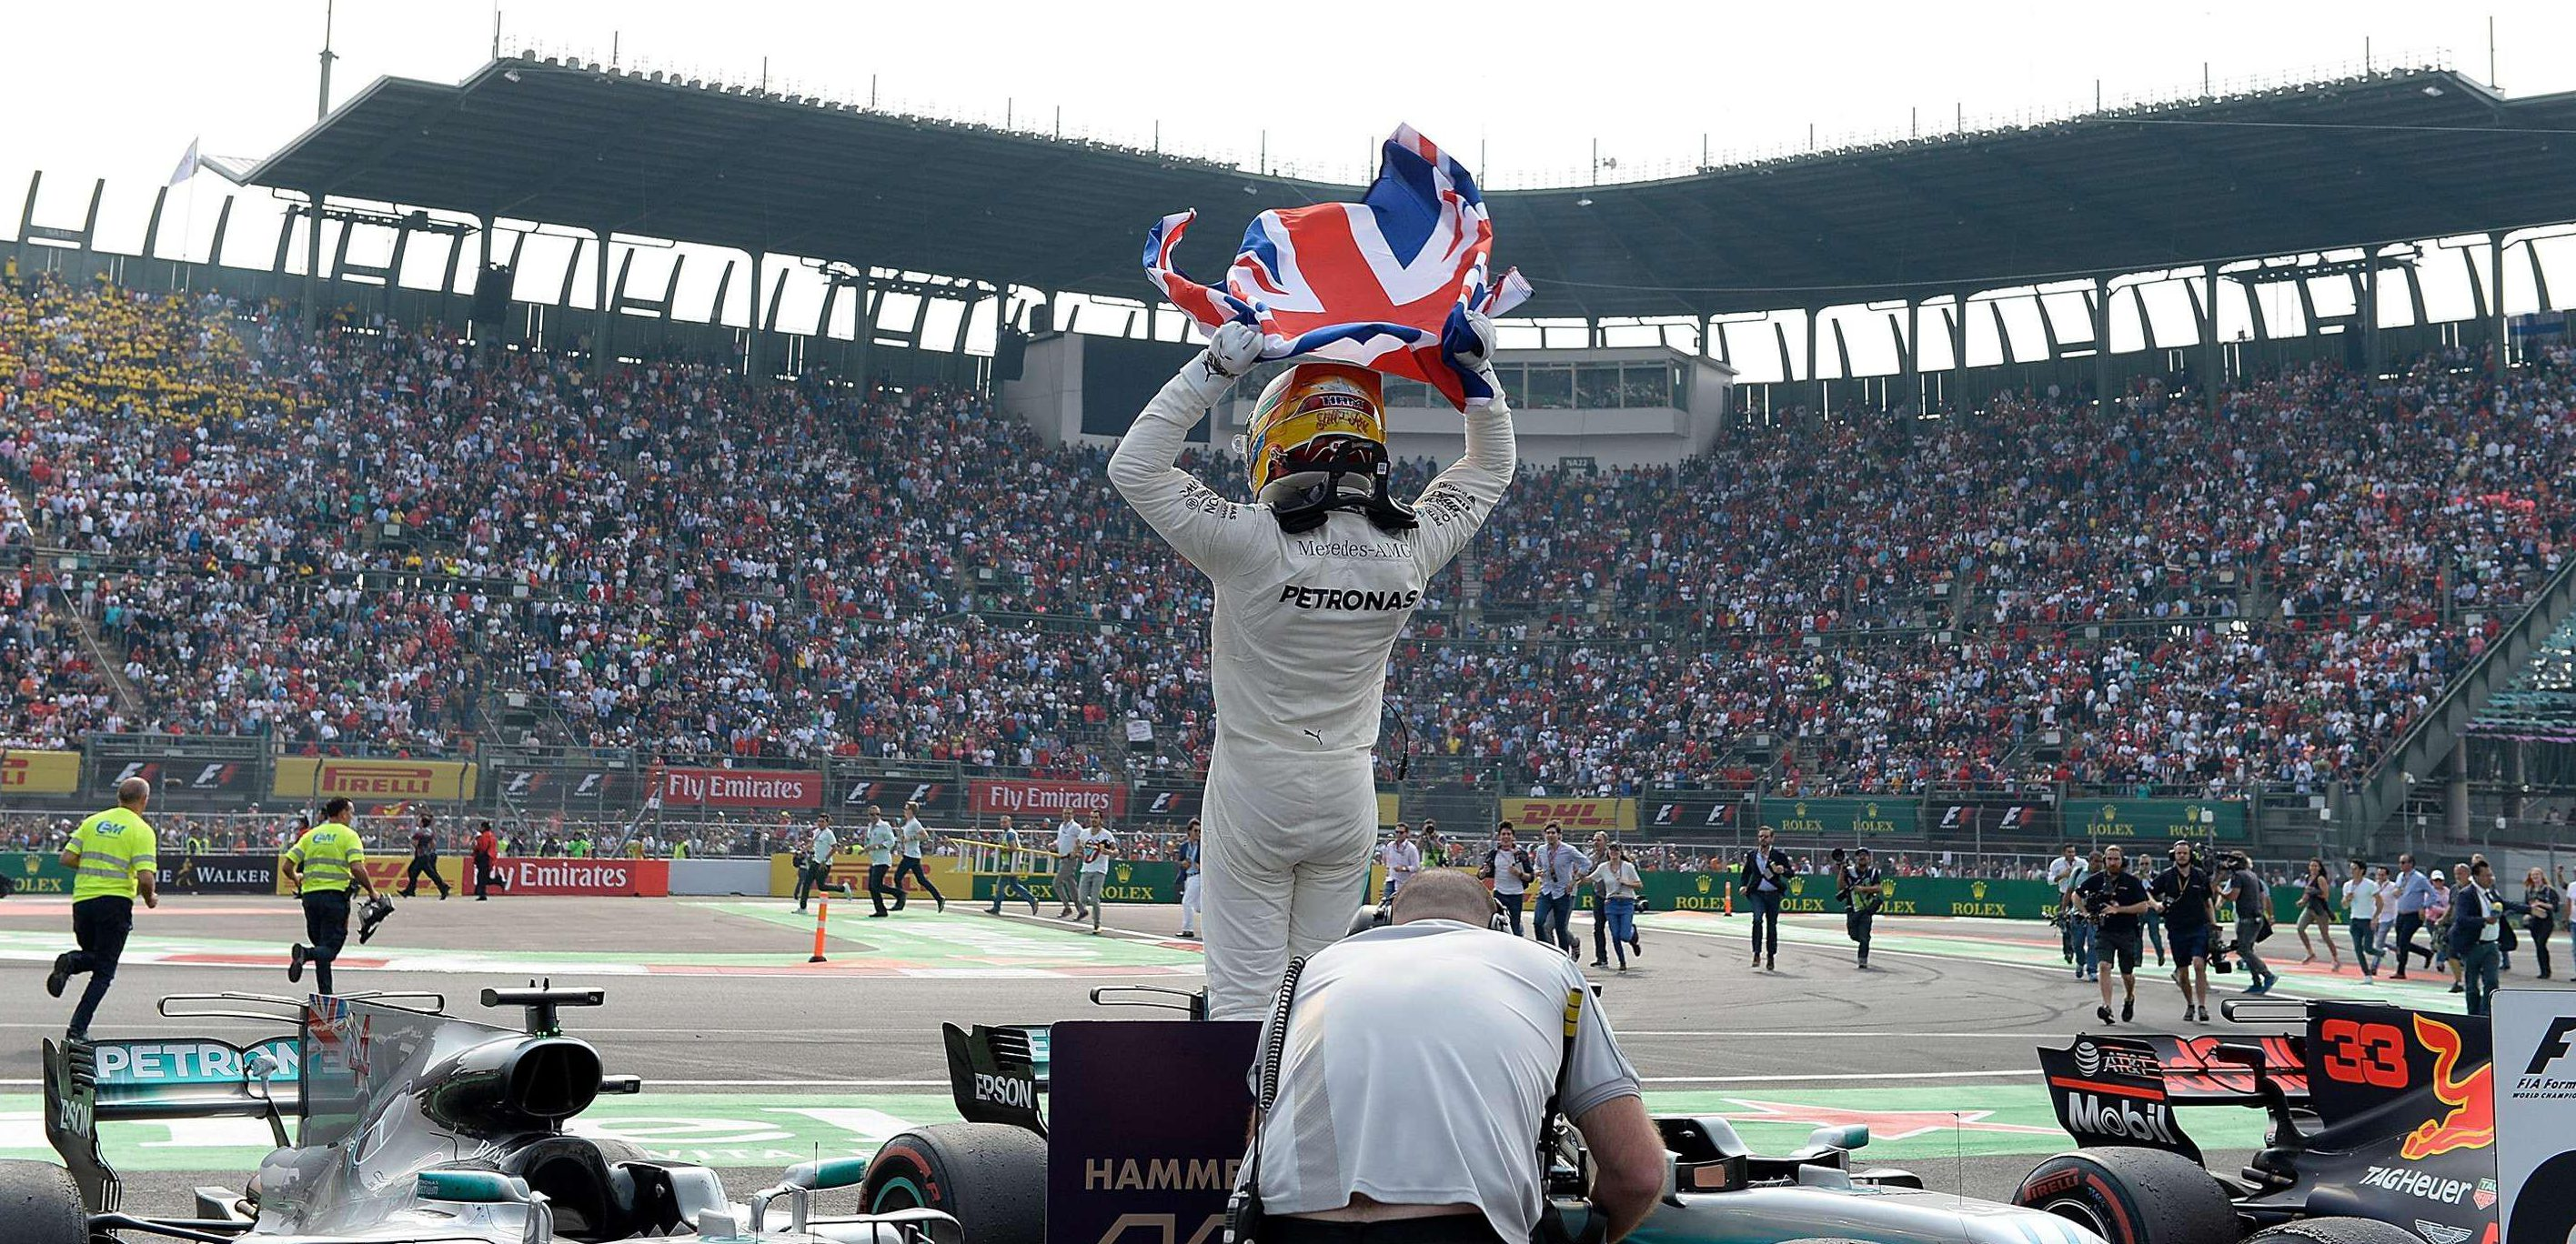 Lewis Hamilton is now the most decorated British Formula One driver ever